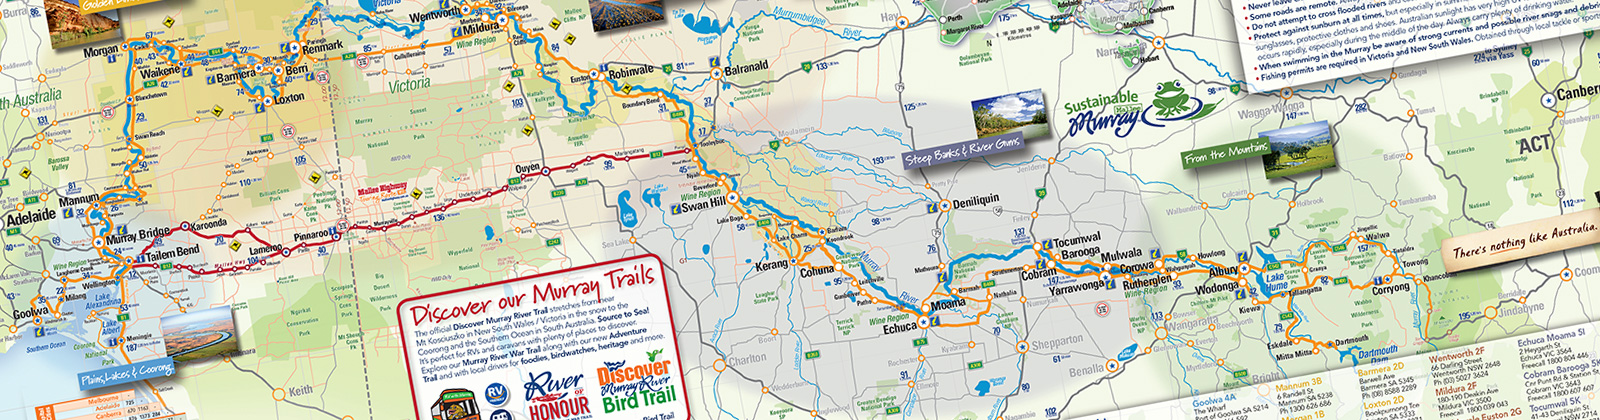 Map Of Australia Murray River.Discover Murray River Trail Map Murray River Shop